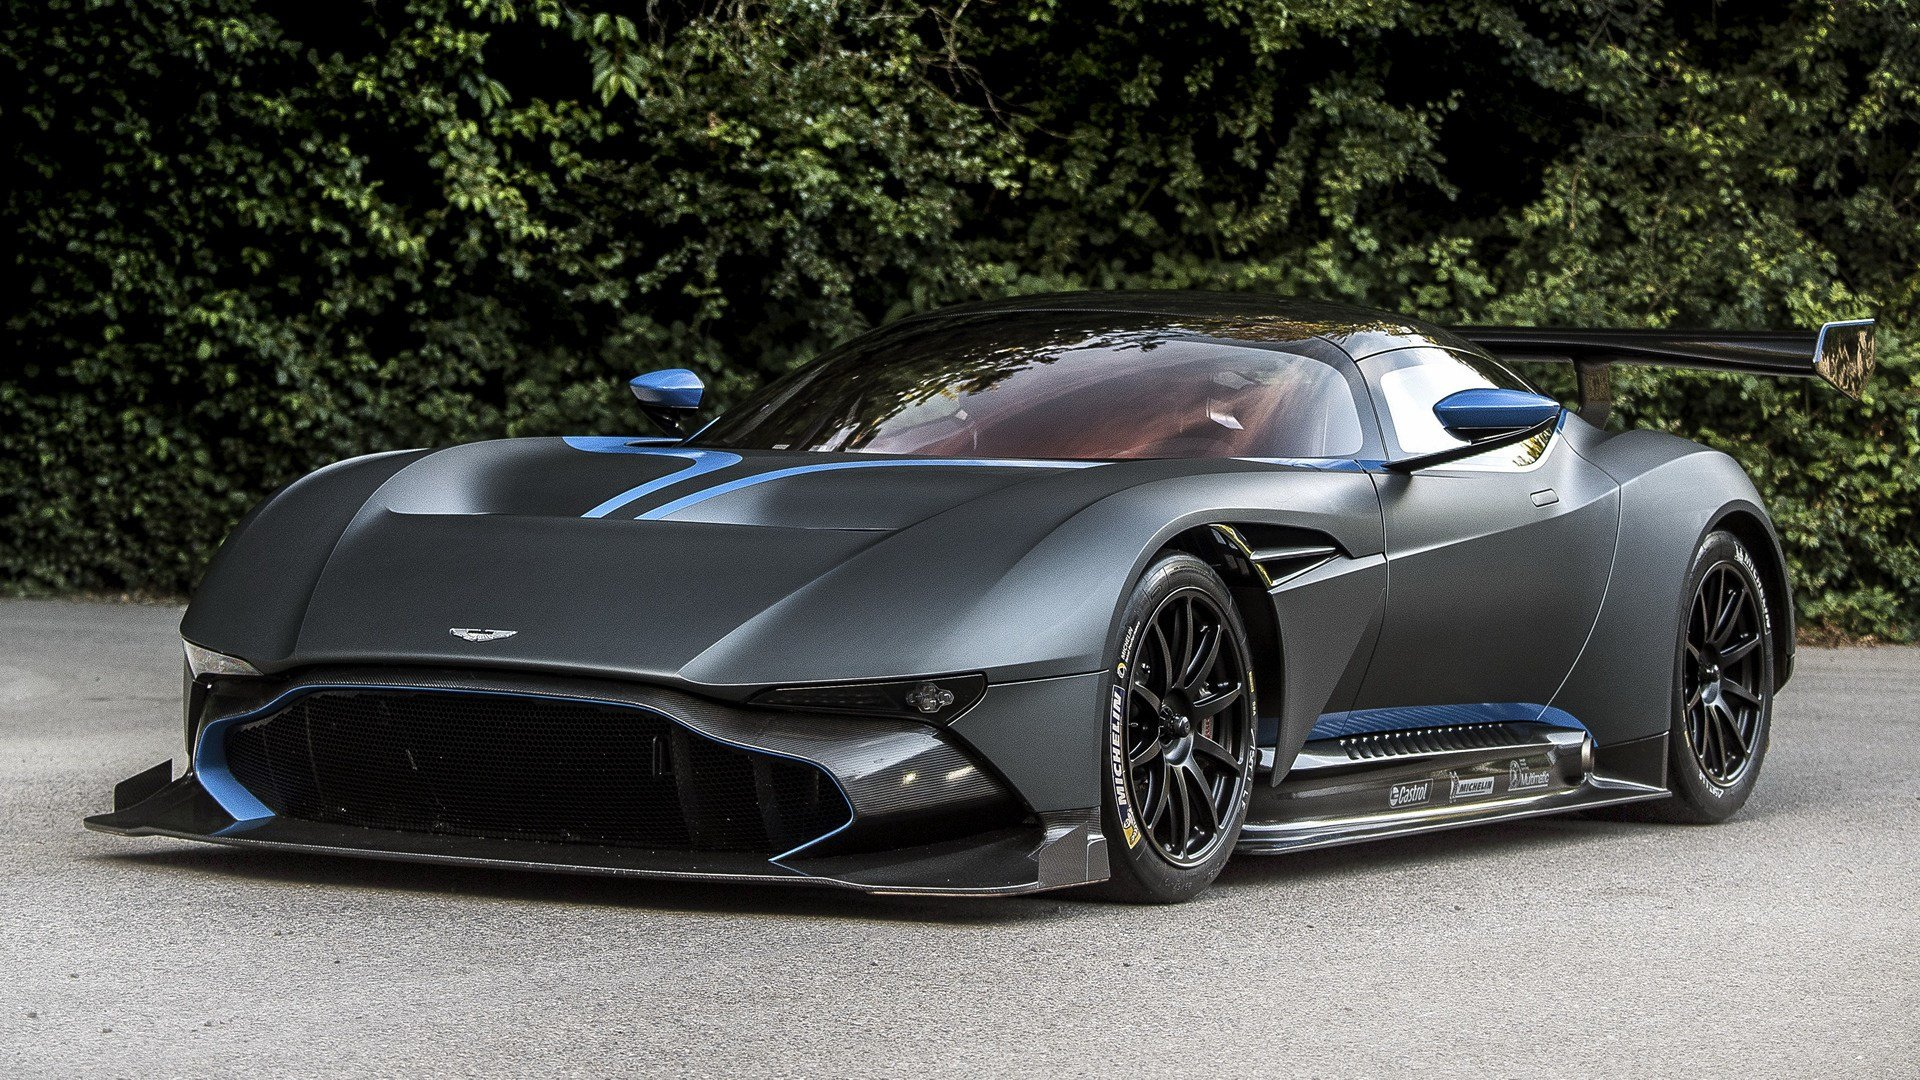 Latest 2015 Aston Martin Vulcan Wallpapers And Hd Images Car Free Download